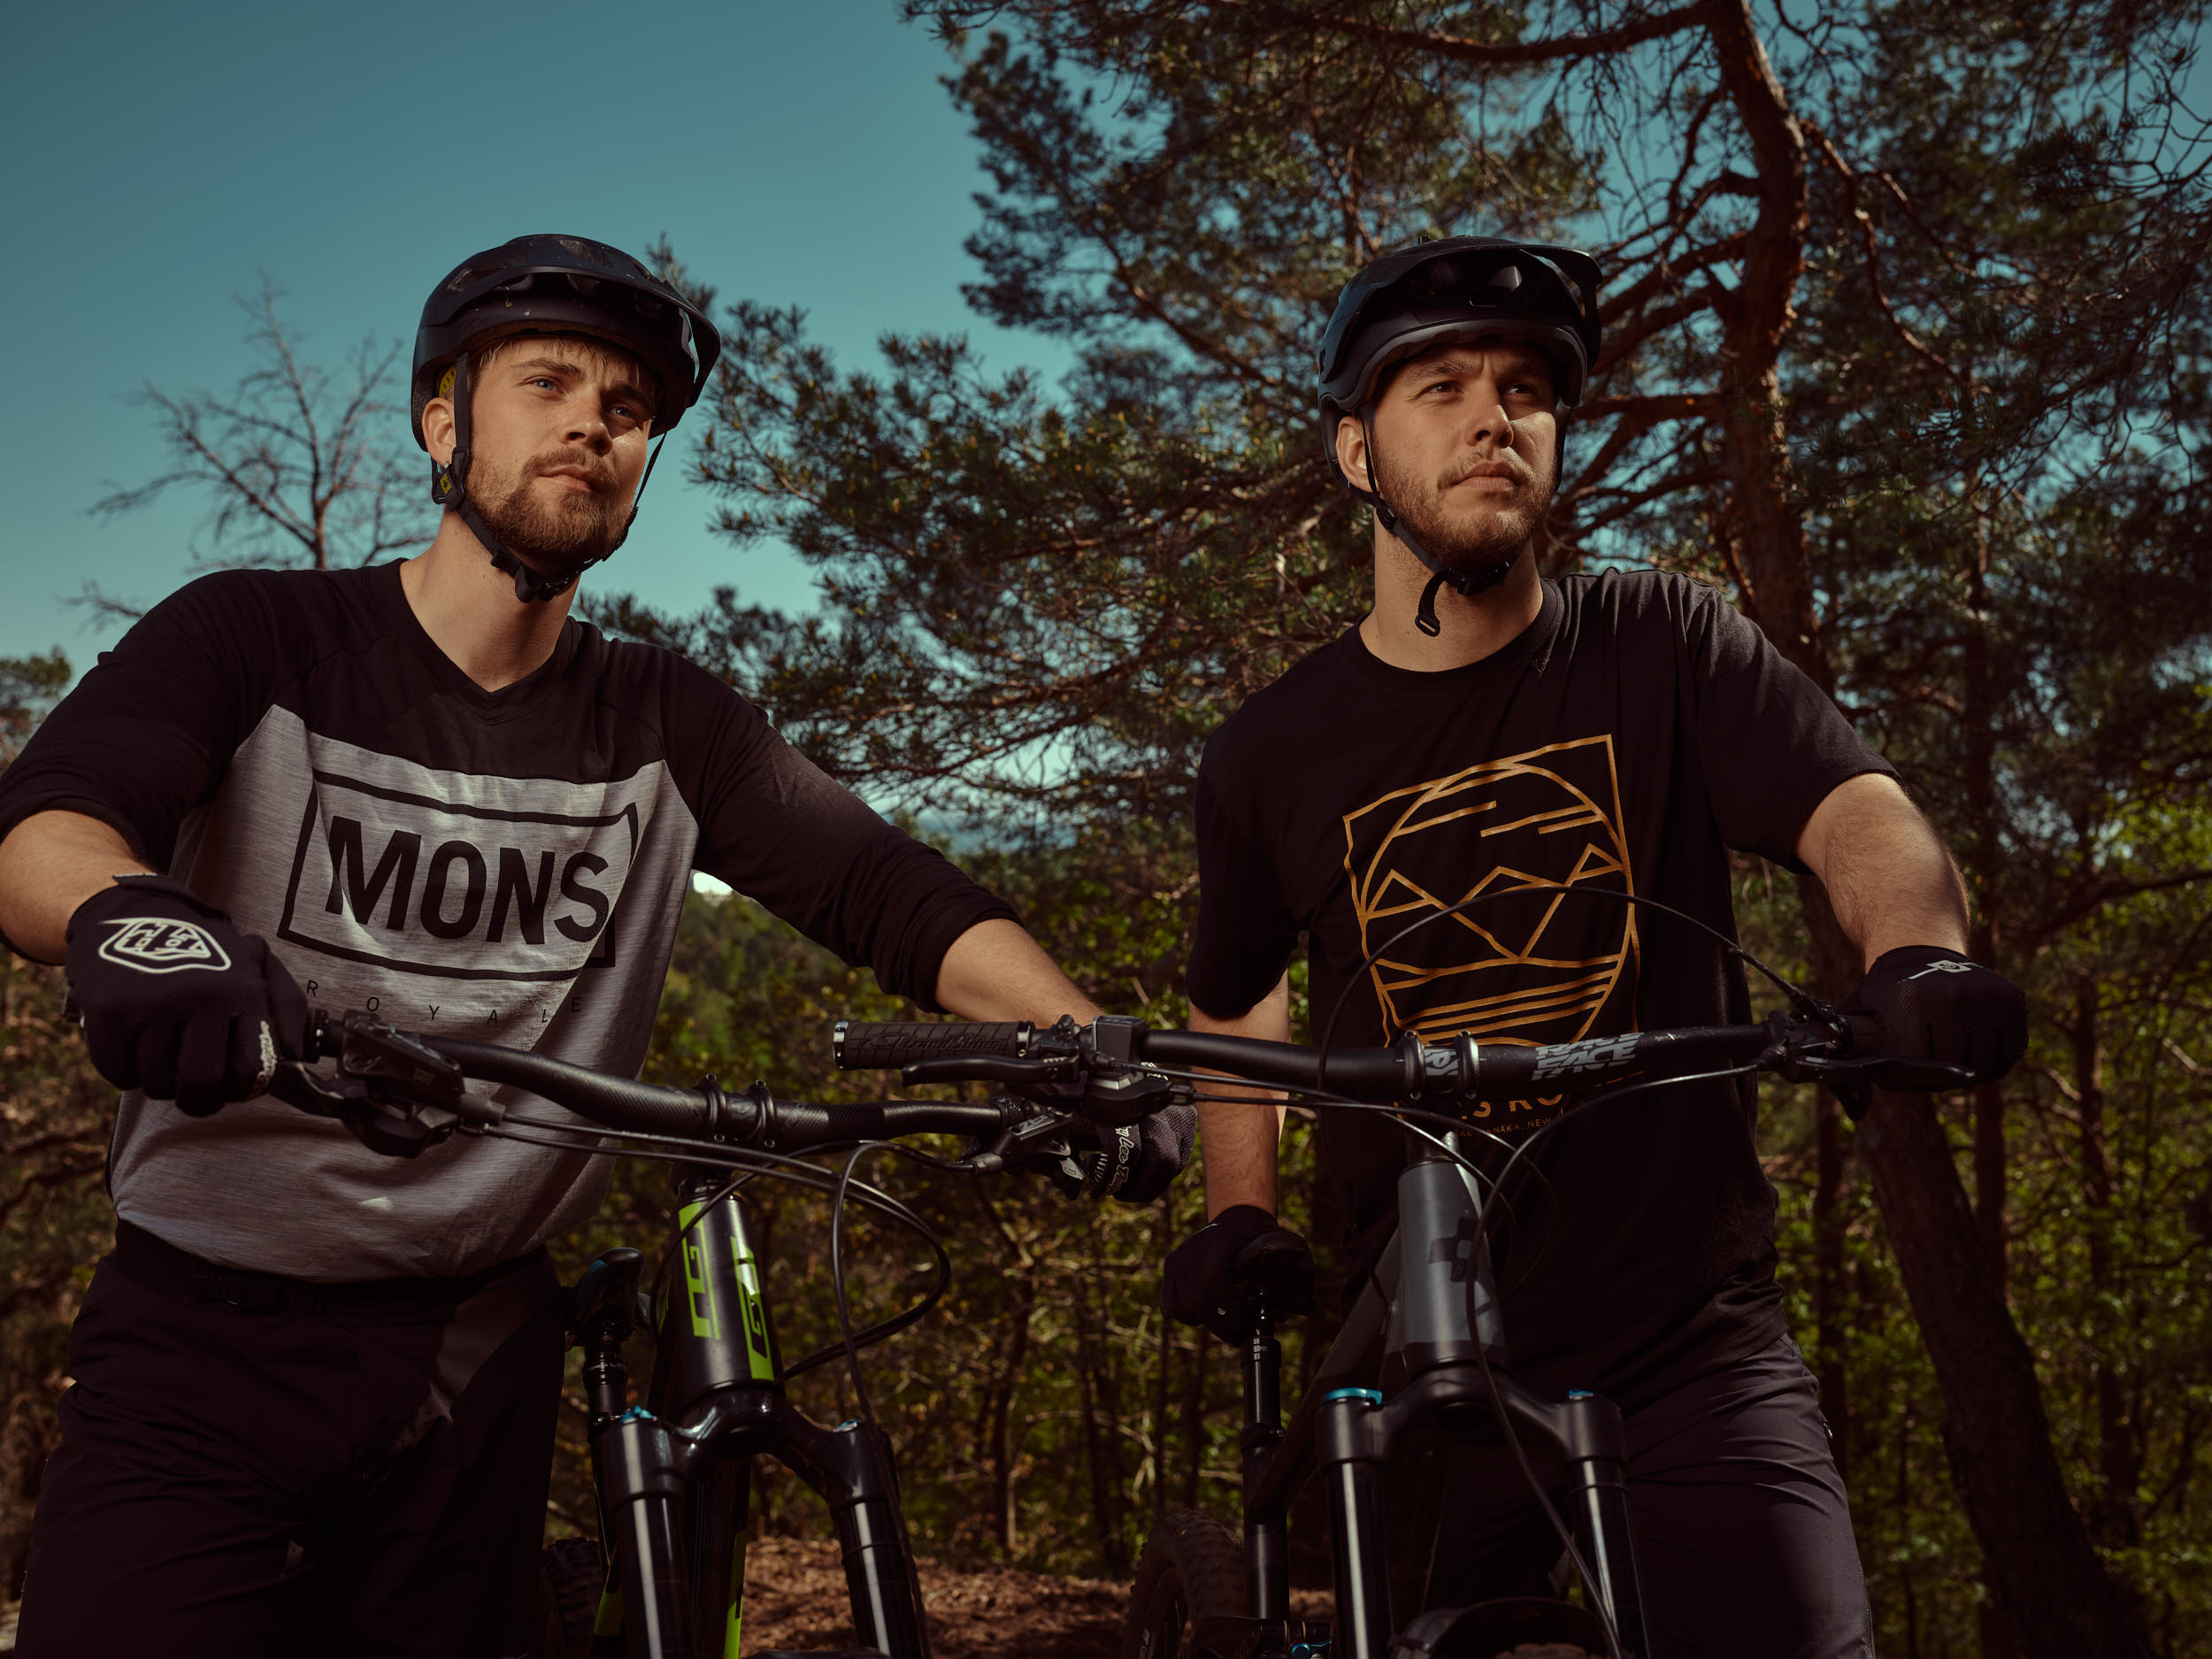 Downhill bikes Martin Solber & Vetle Brunvatne photo by Marcel Tiedje